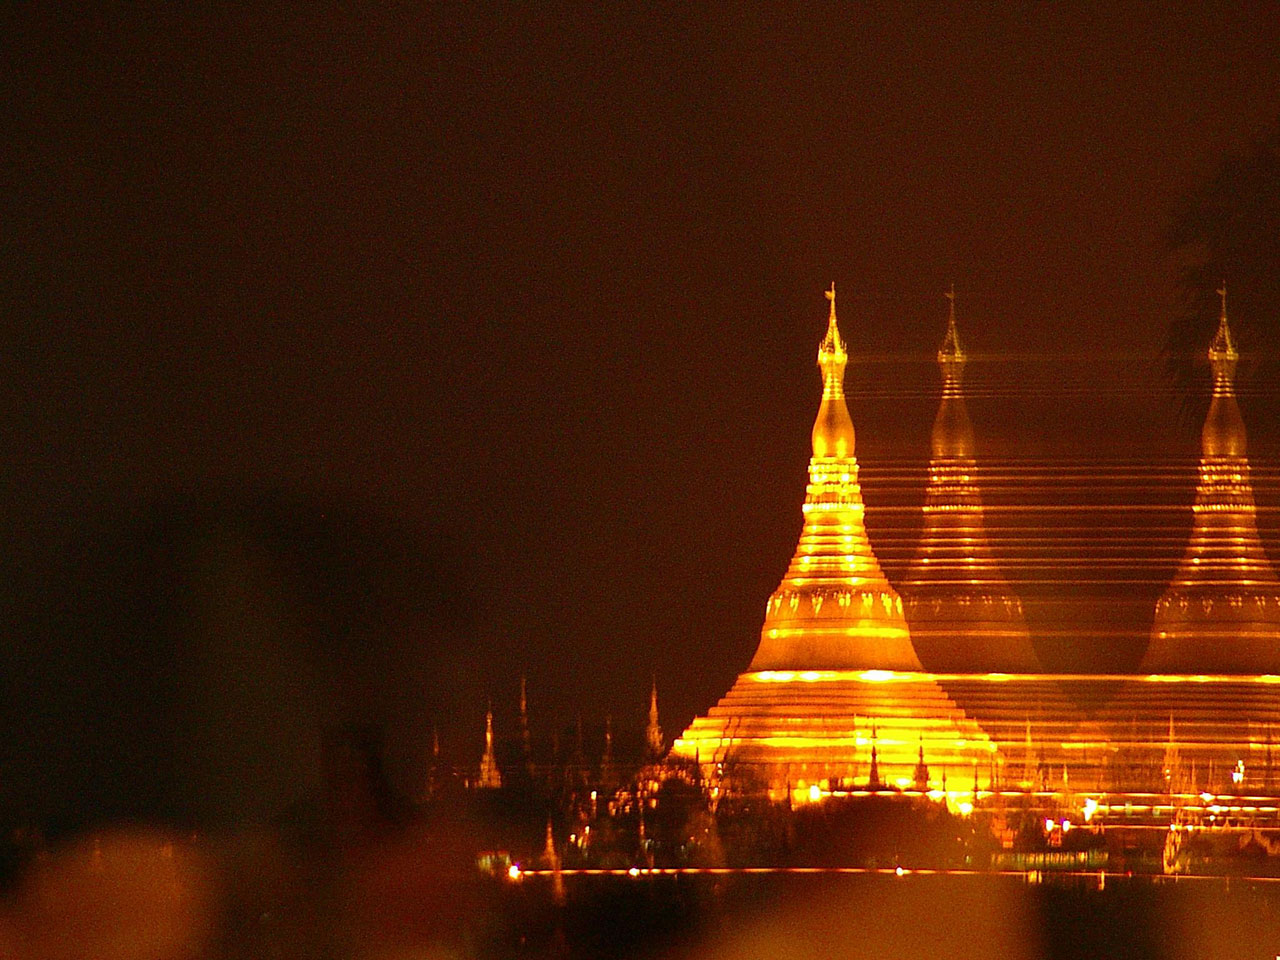 The Shwedagon Paya in Yangon, Burma